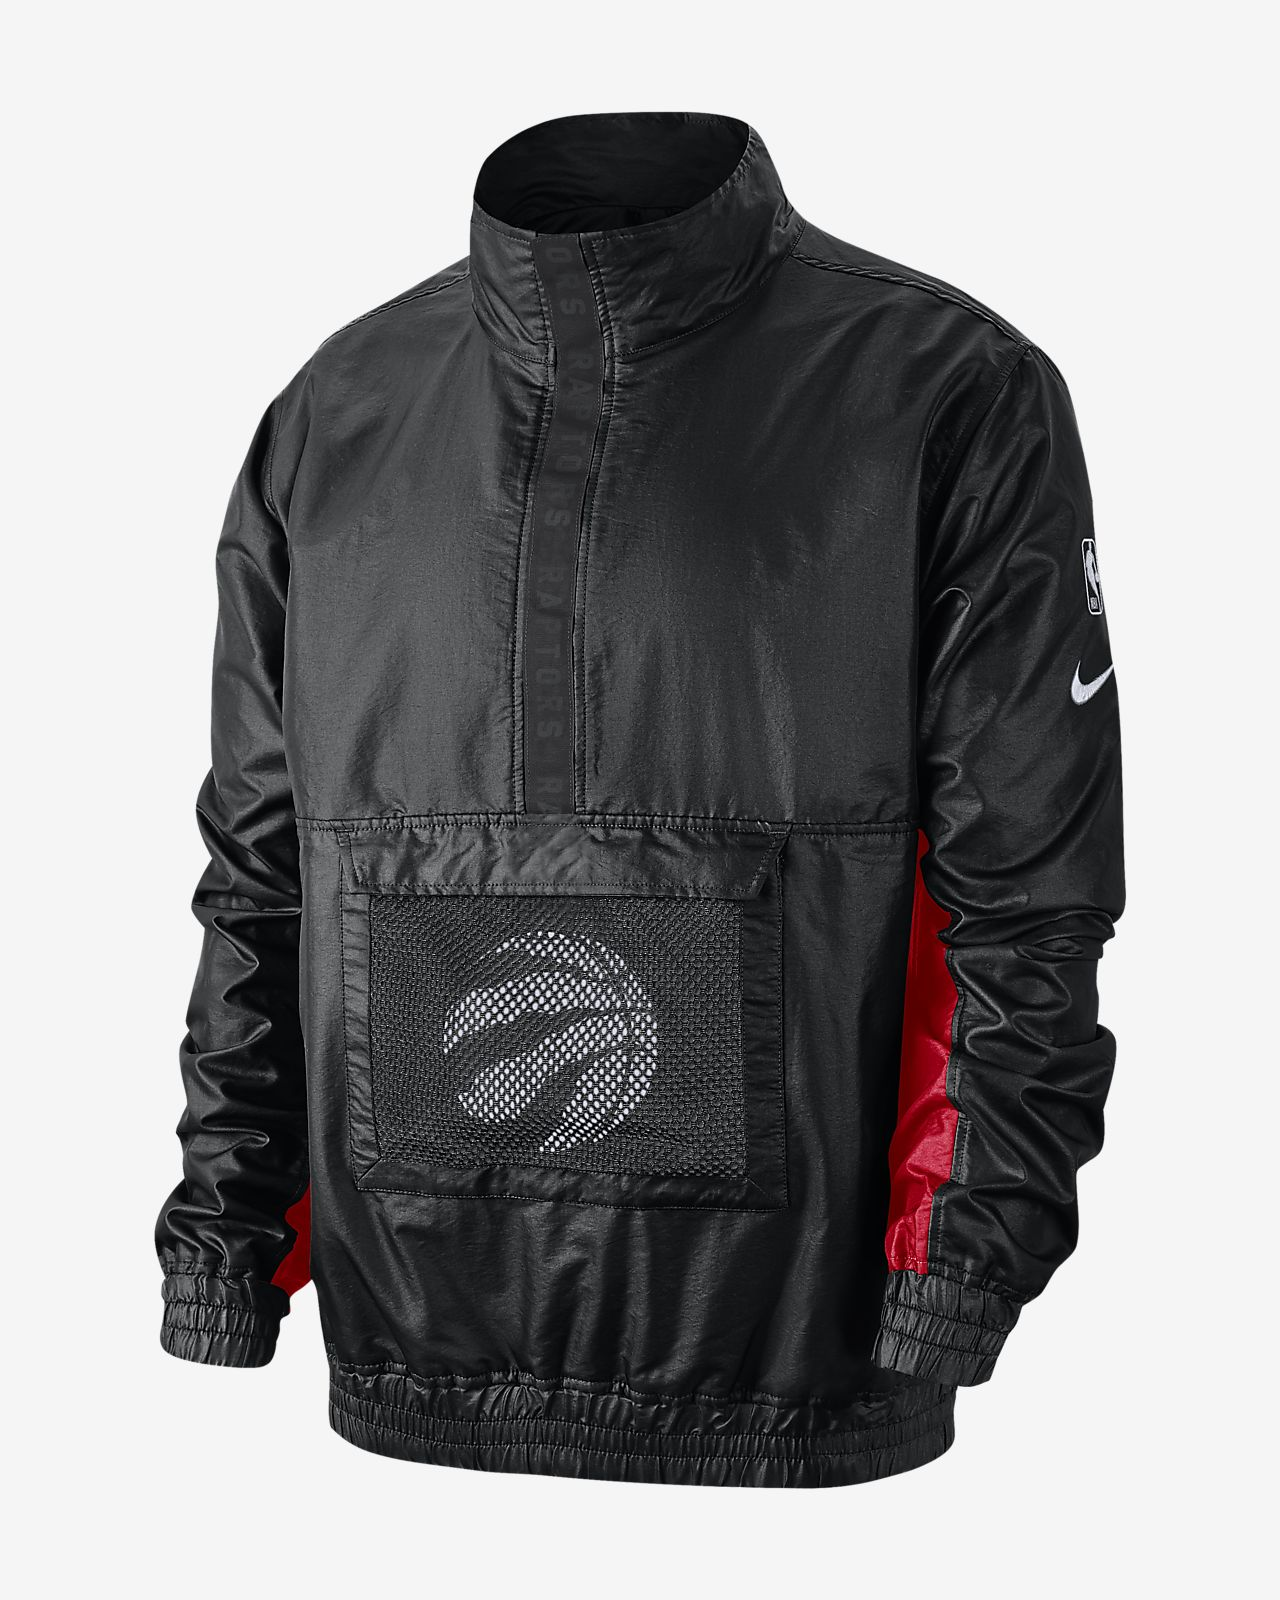 Toronto Raptors Nike Men's Lightweight NBA Jacket